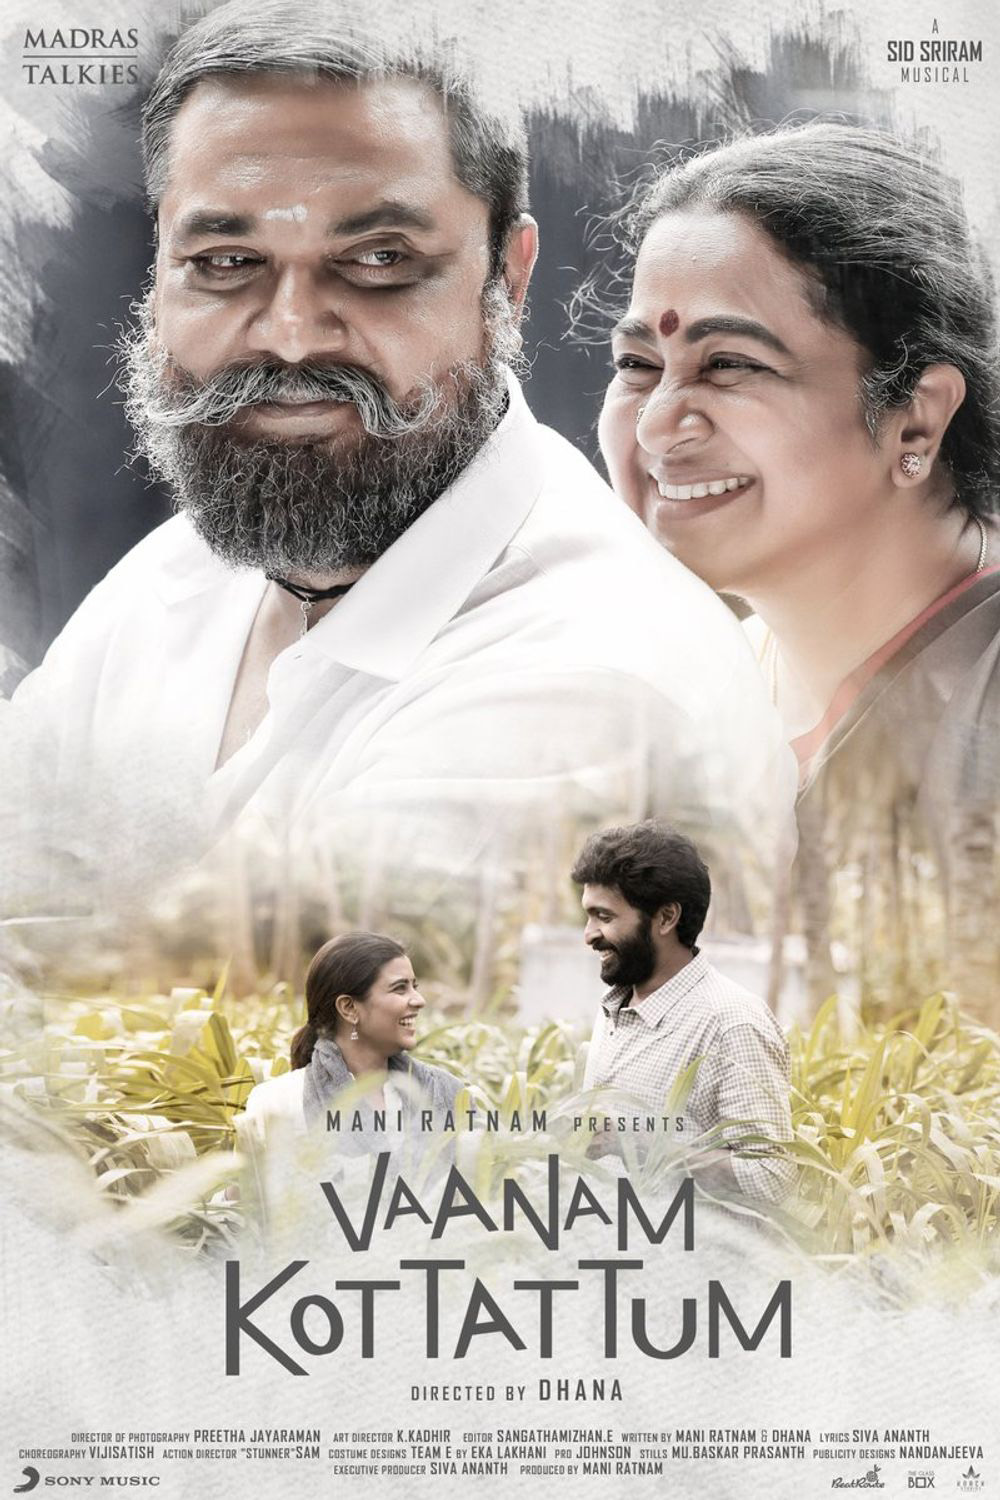 Still of Vaanam Kottattum